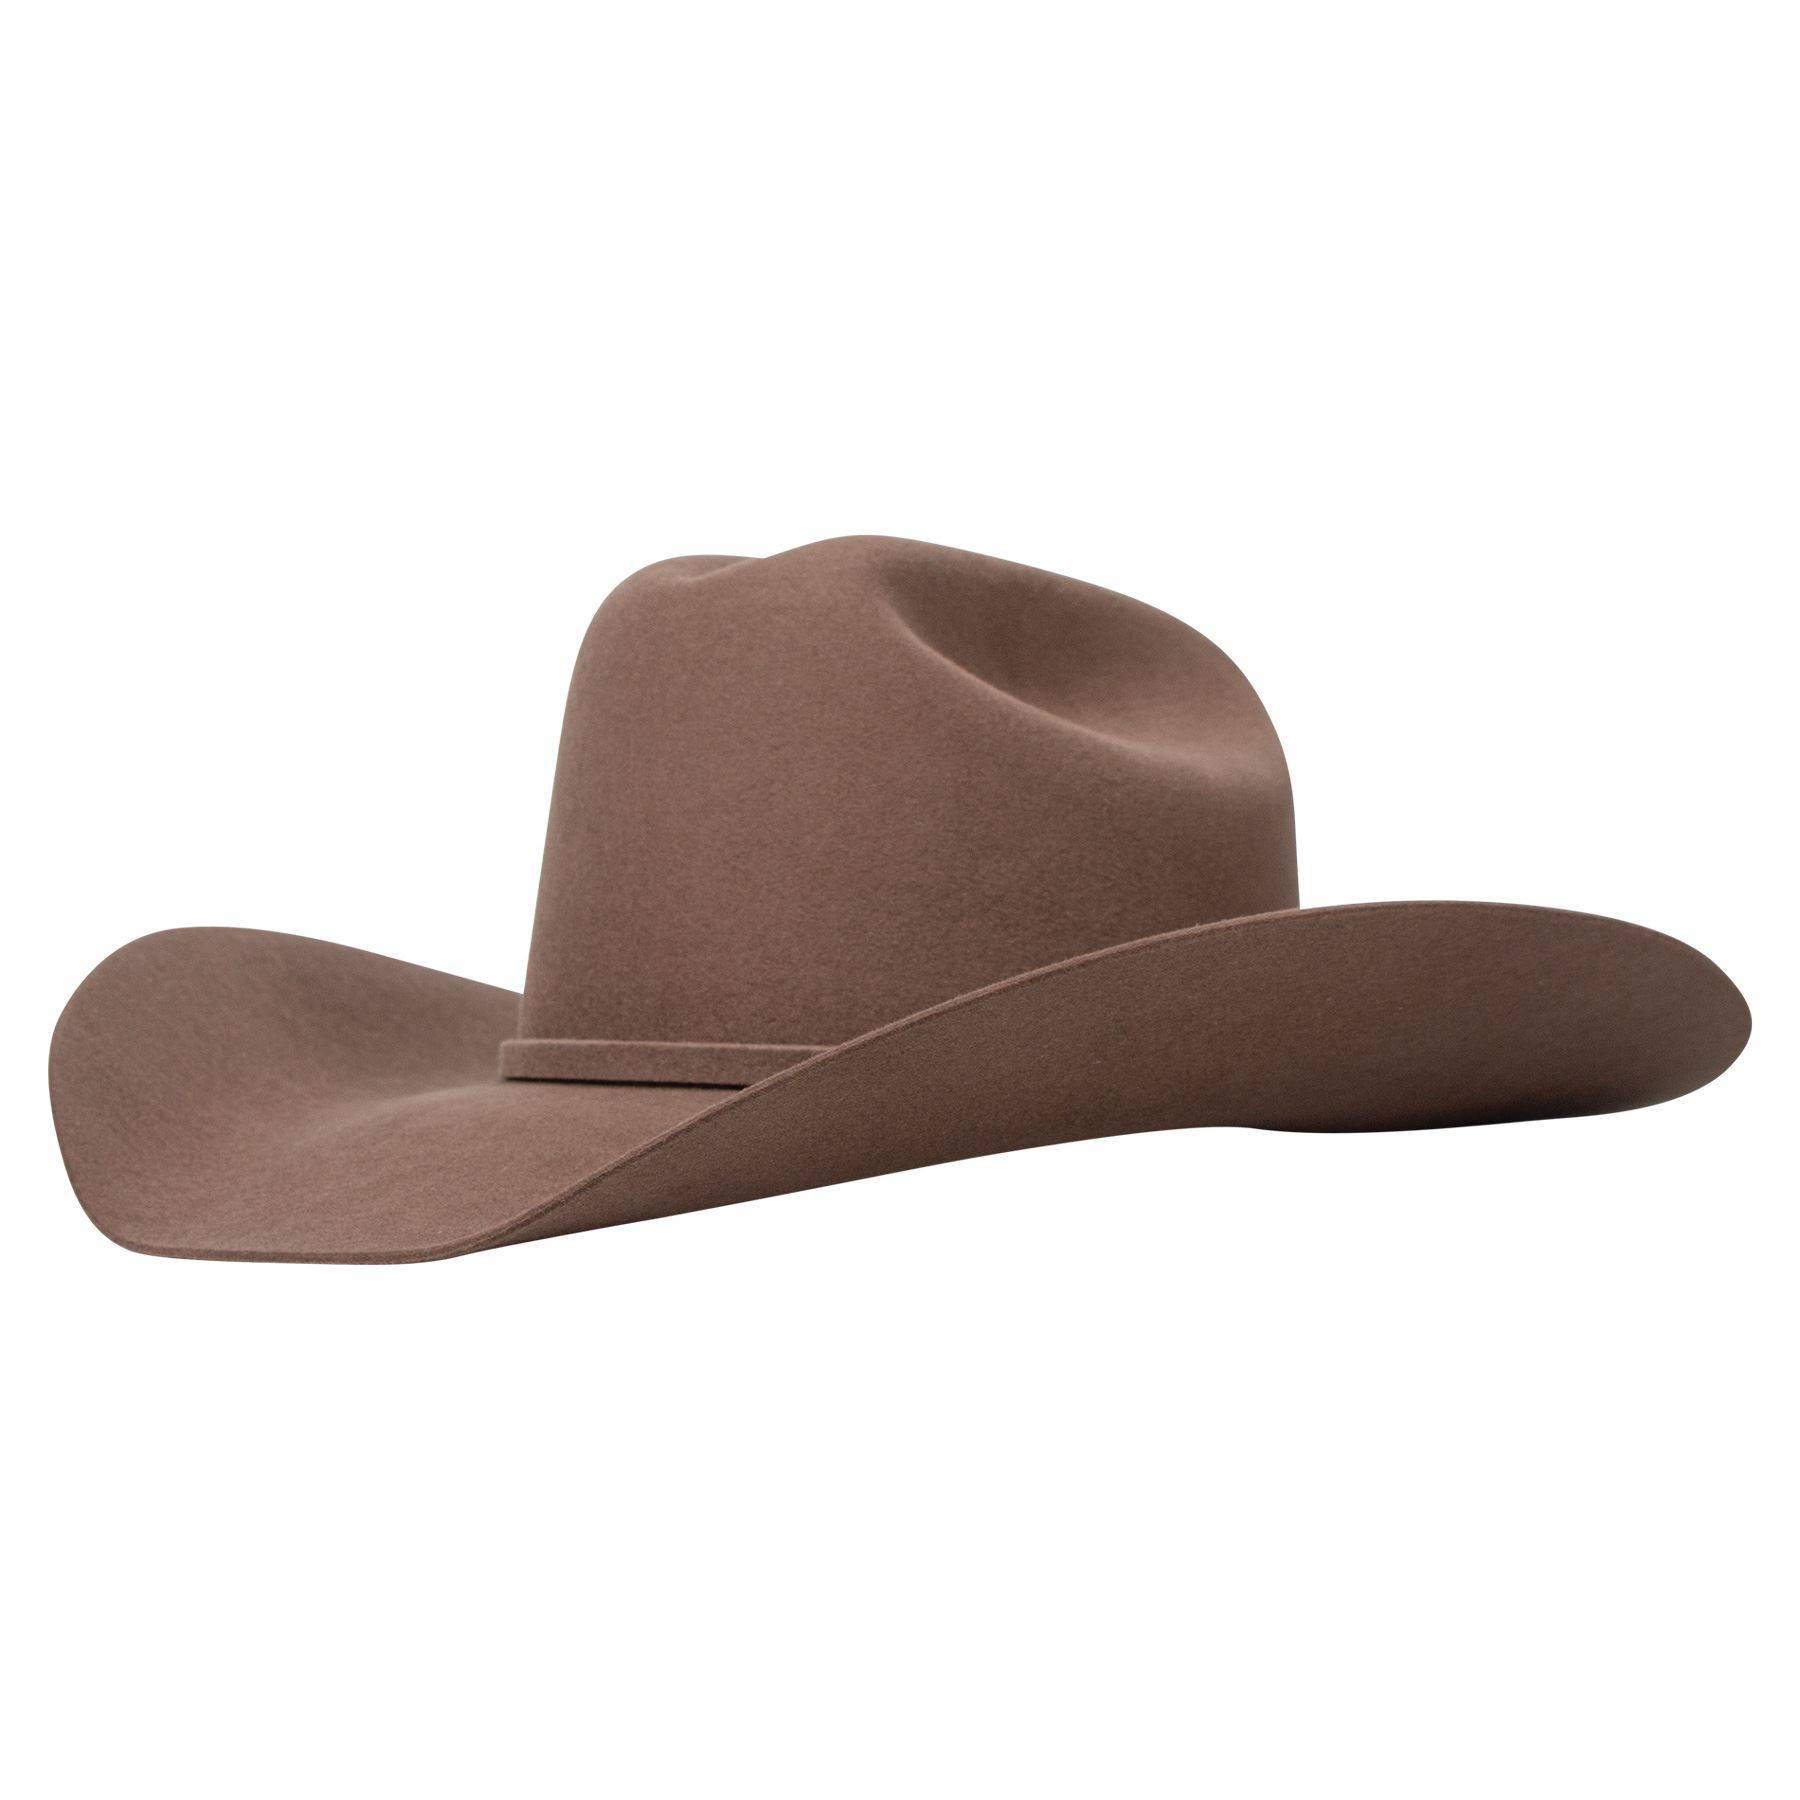 Schneiders 5X Felt Cowboy Hat - Tan Belly